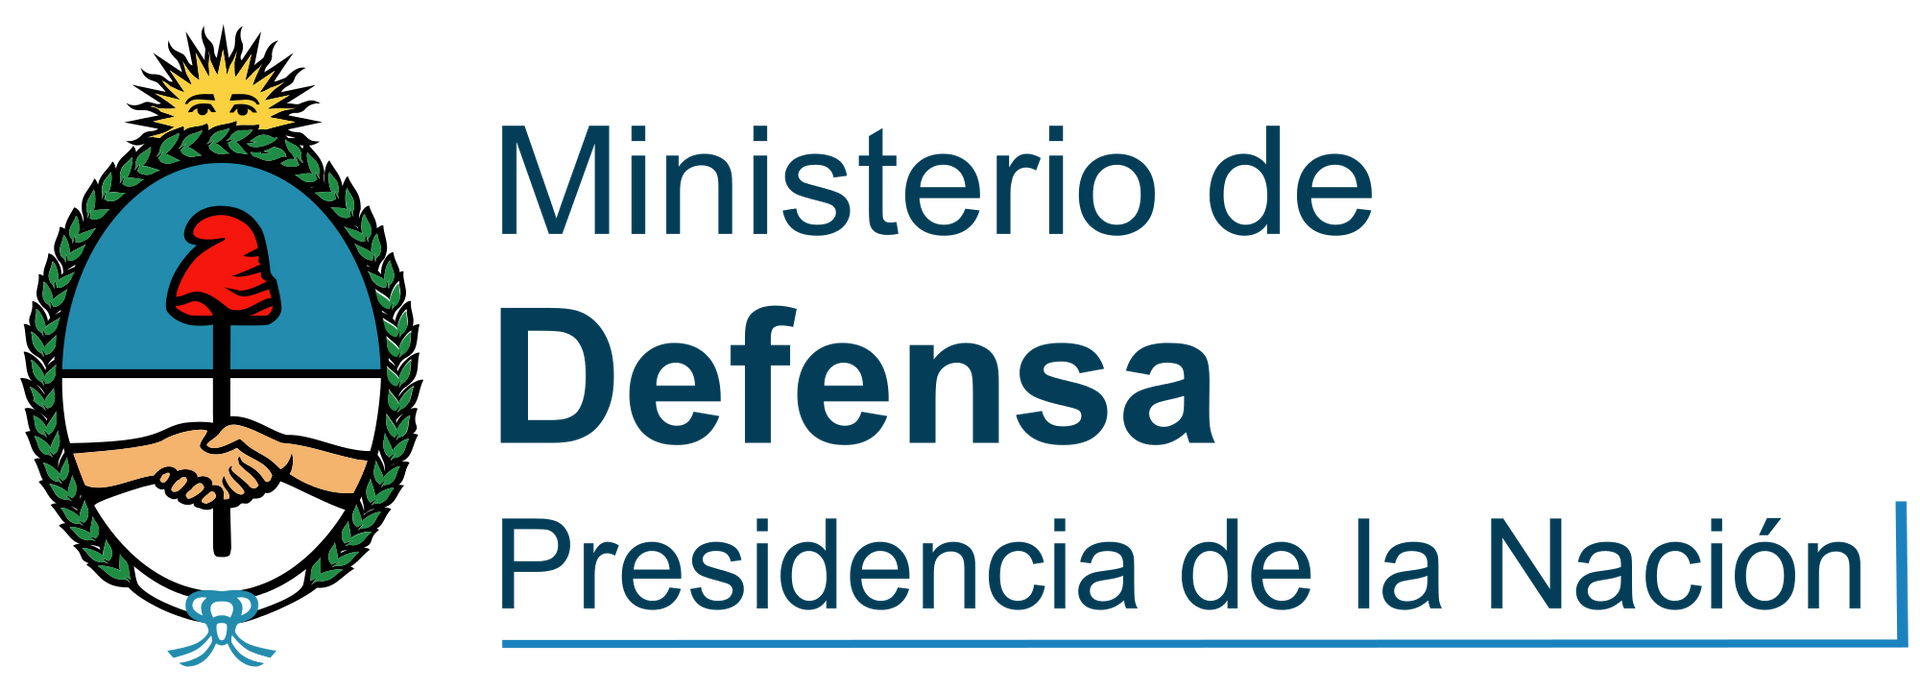 Ministerio_defensa_logo.svg.png